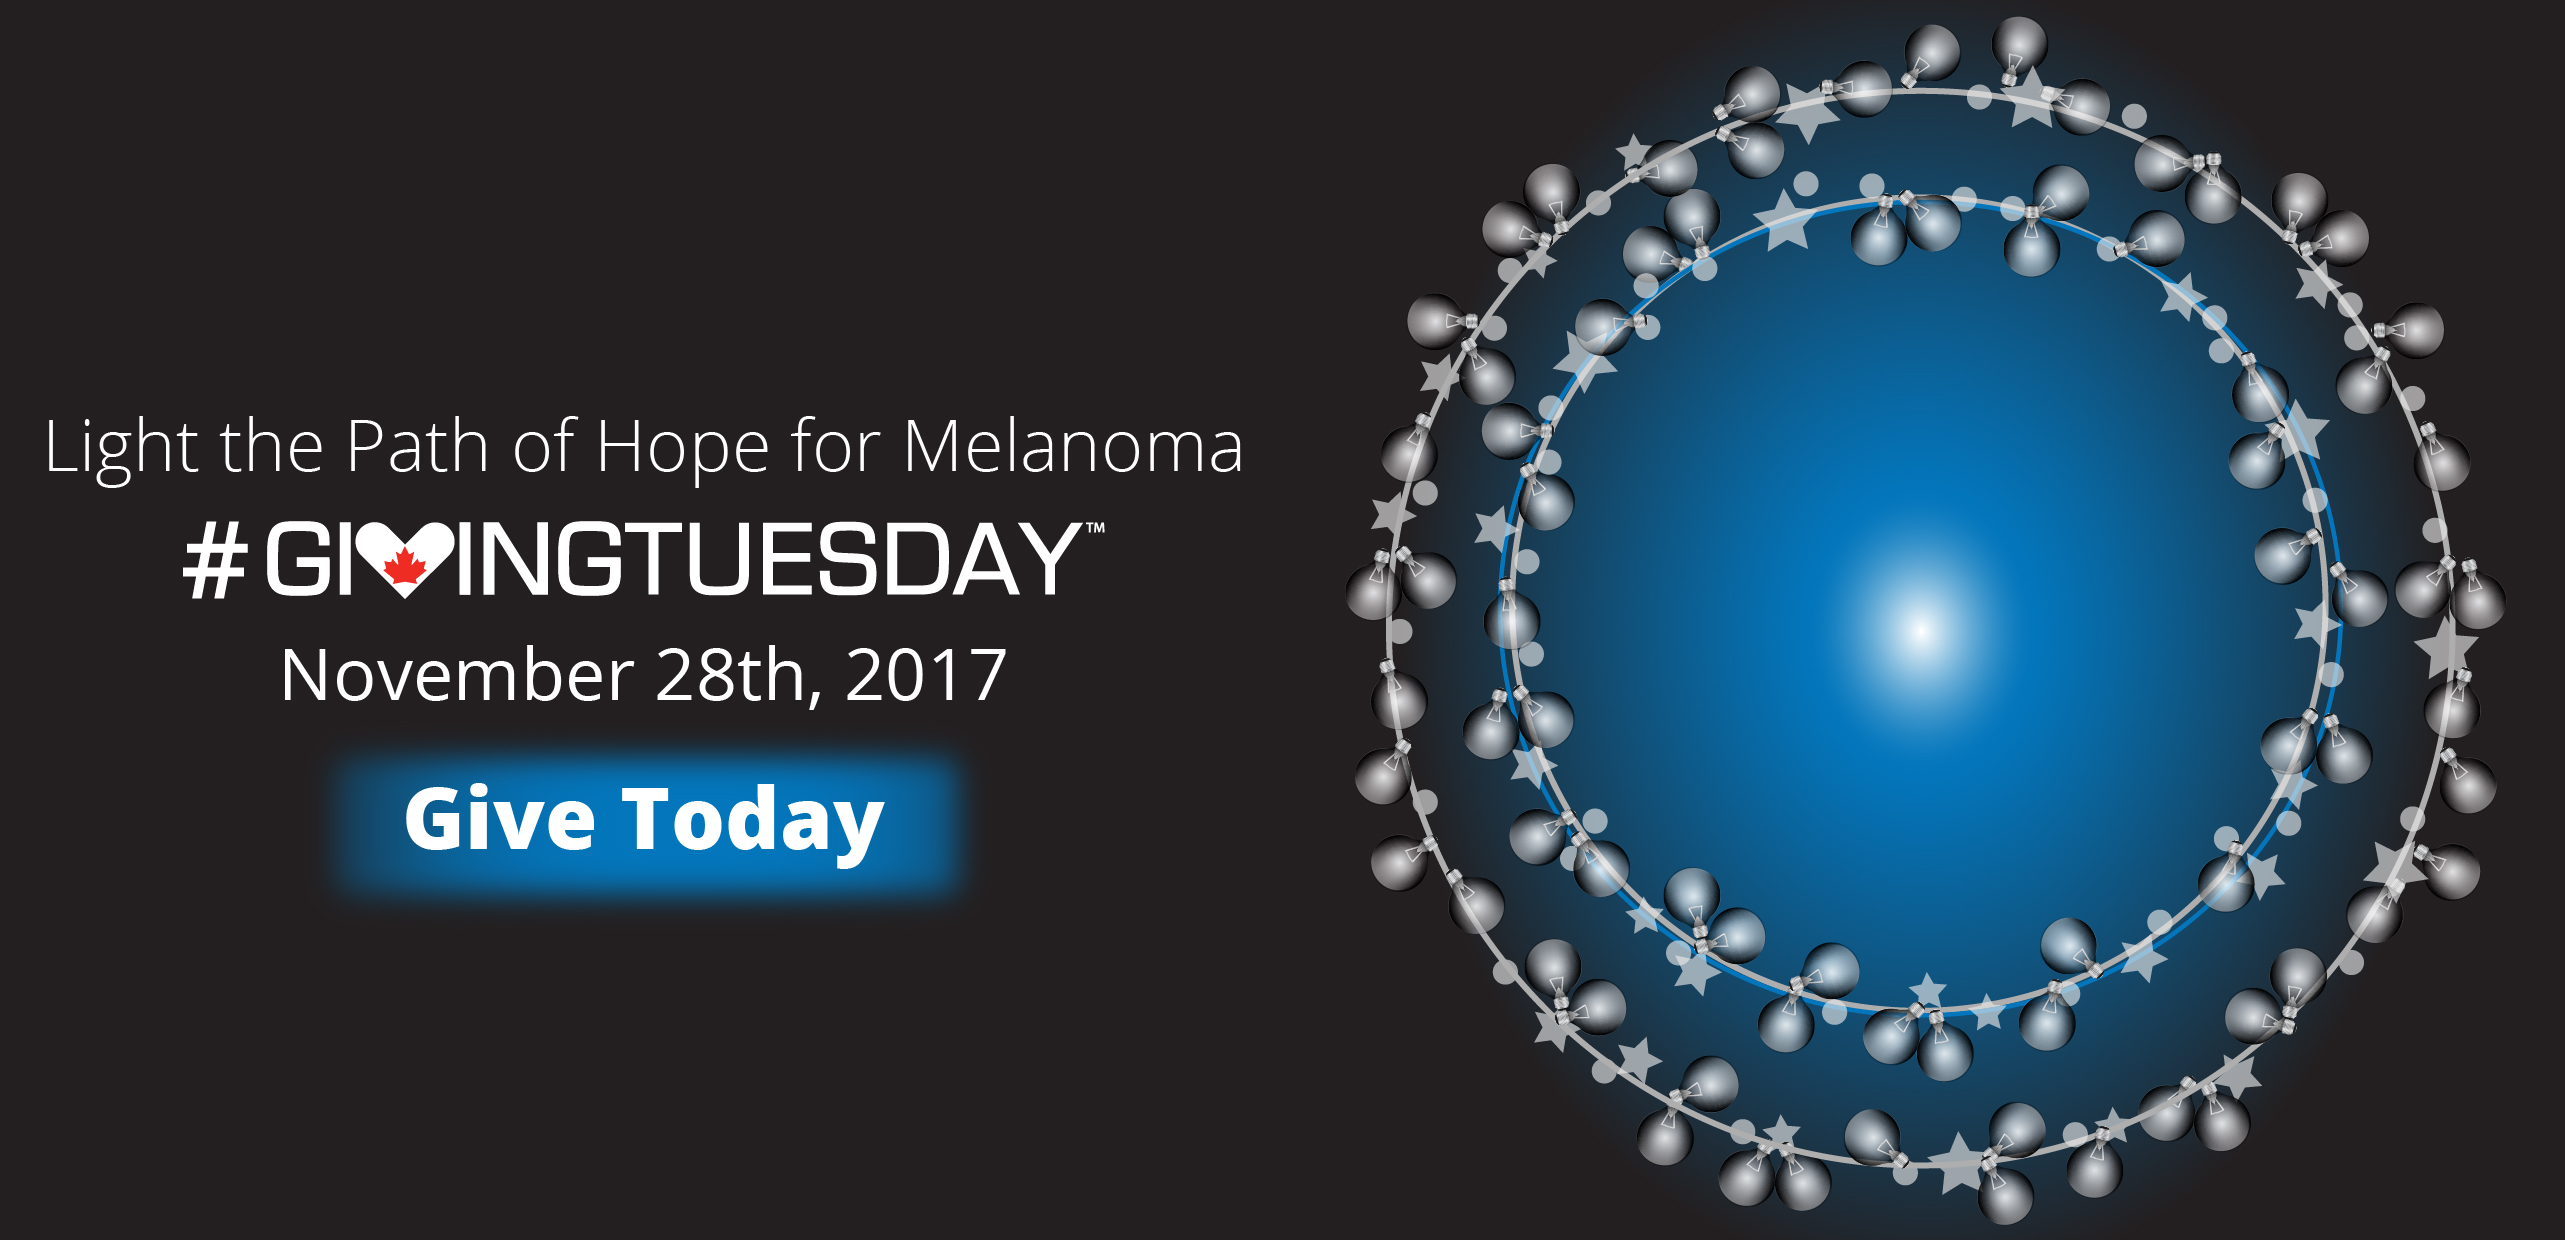 Light the Path of Hope for Melanoma